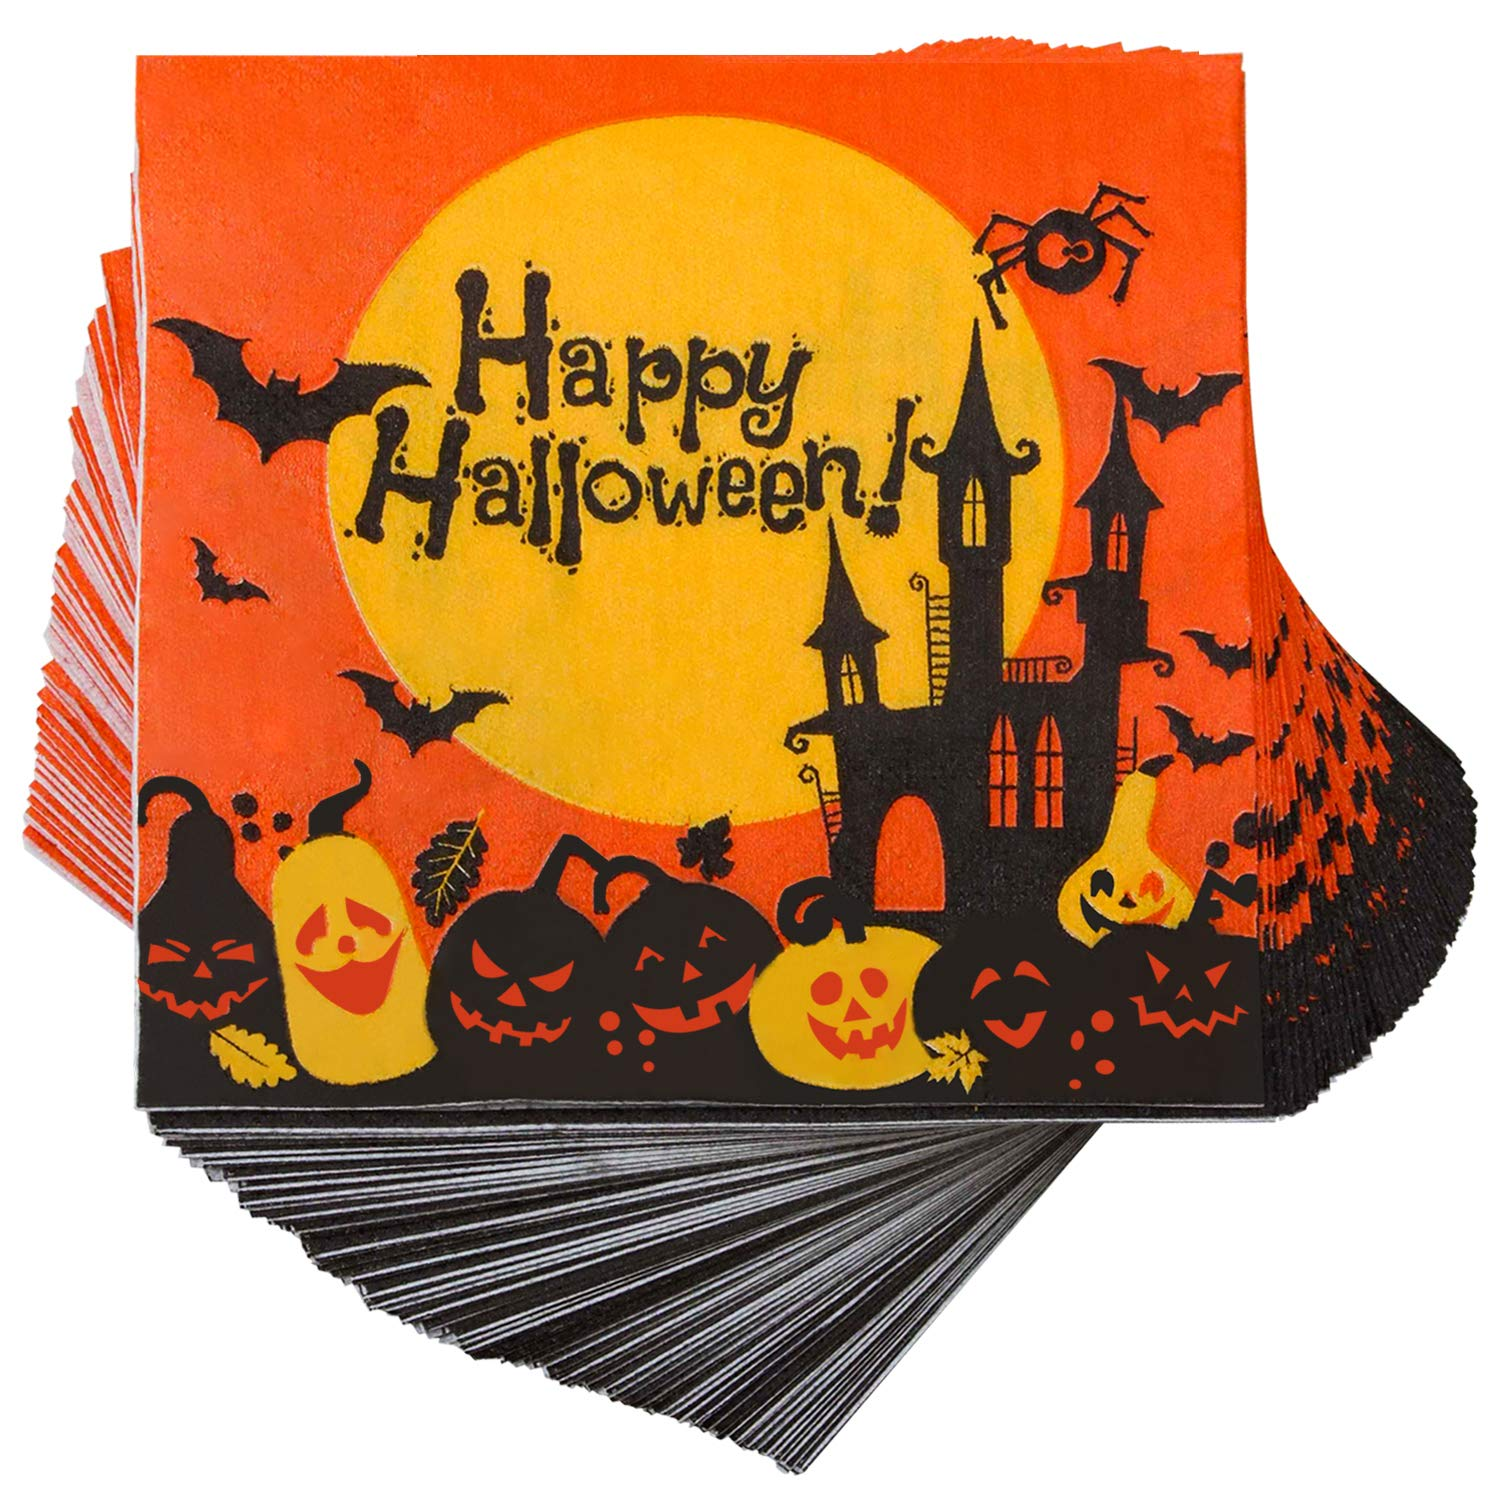 Elcoho 150 Pieces Halloween Disposable Beverage Paper Napkins Frightfully Fancy Cocktail Napkins with 2 Layers, 5 by 5 inches (set A)